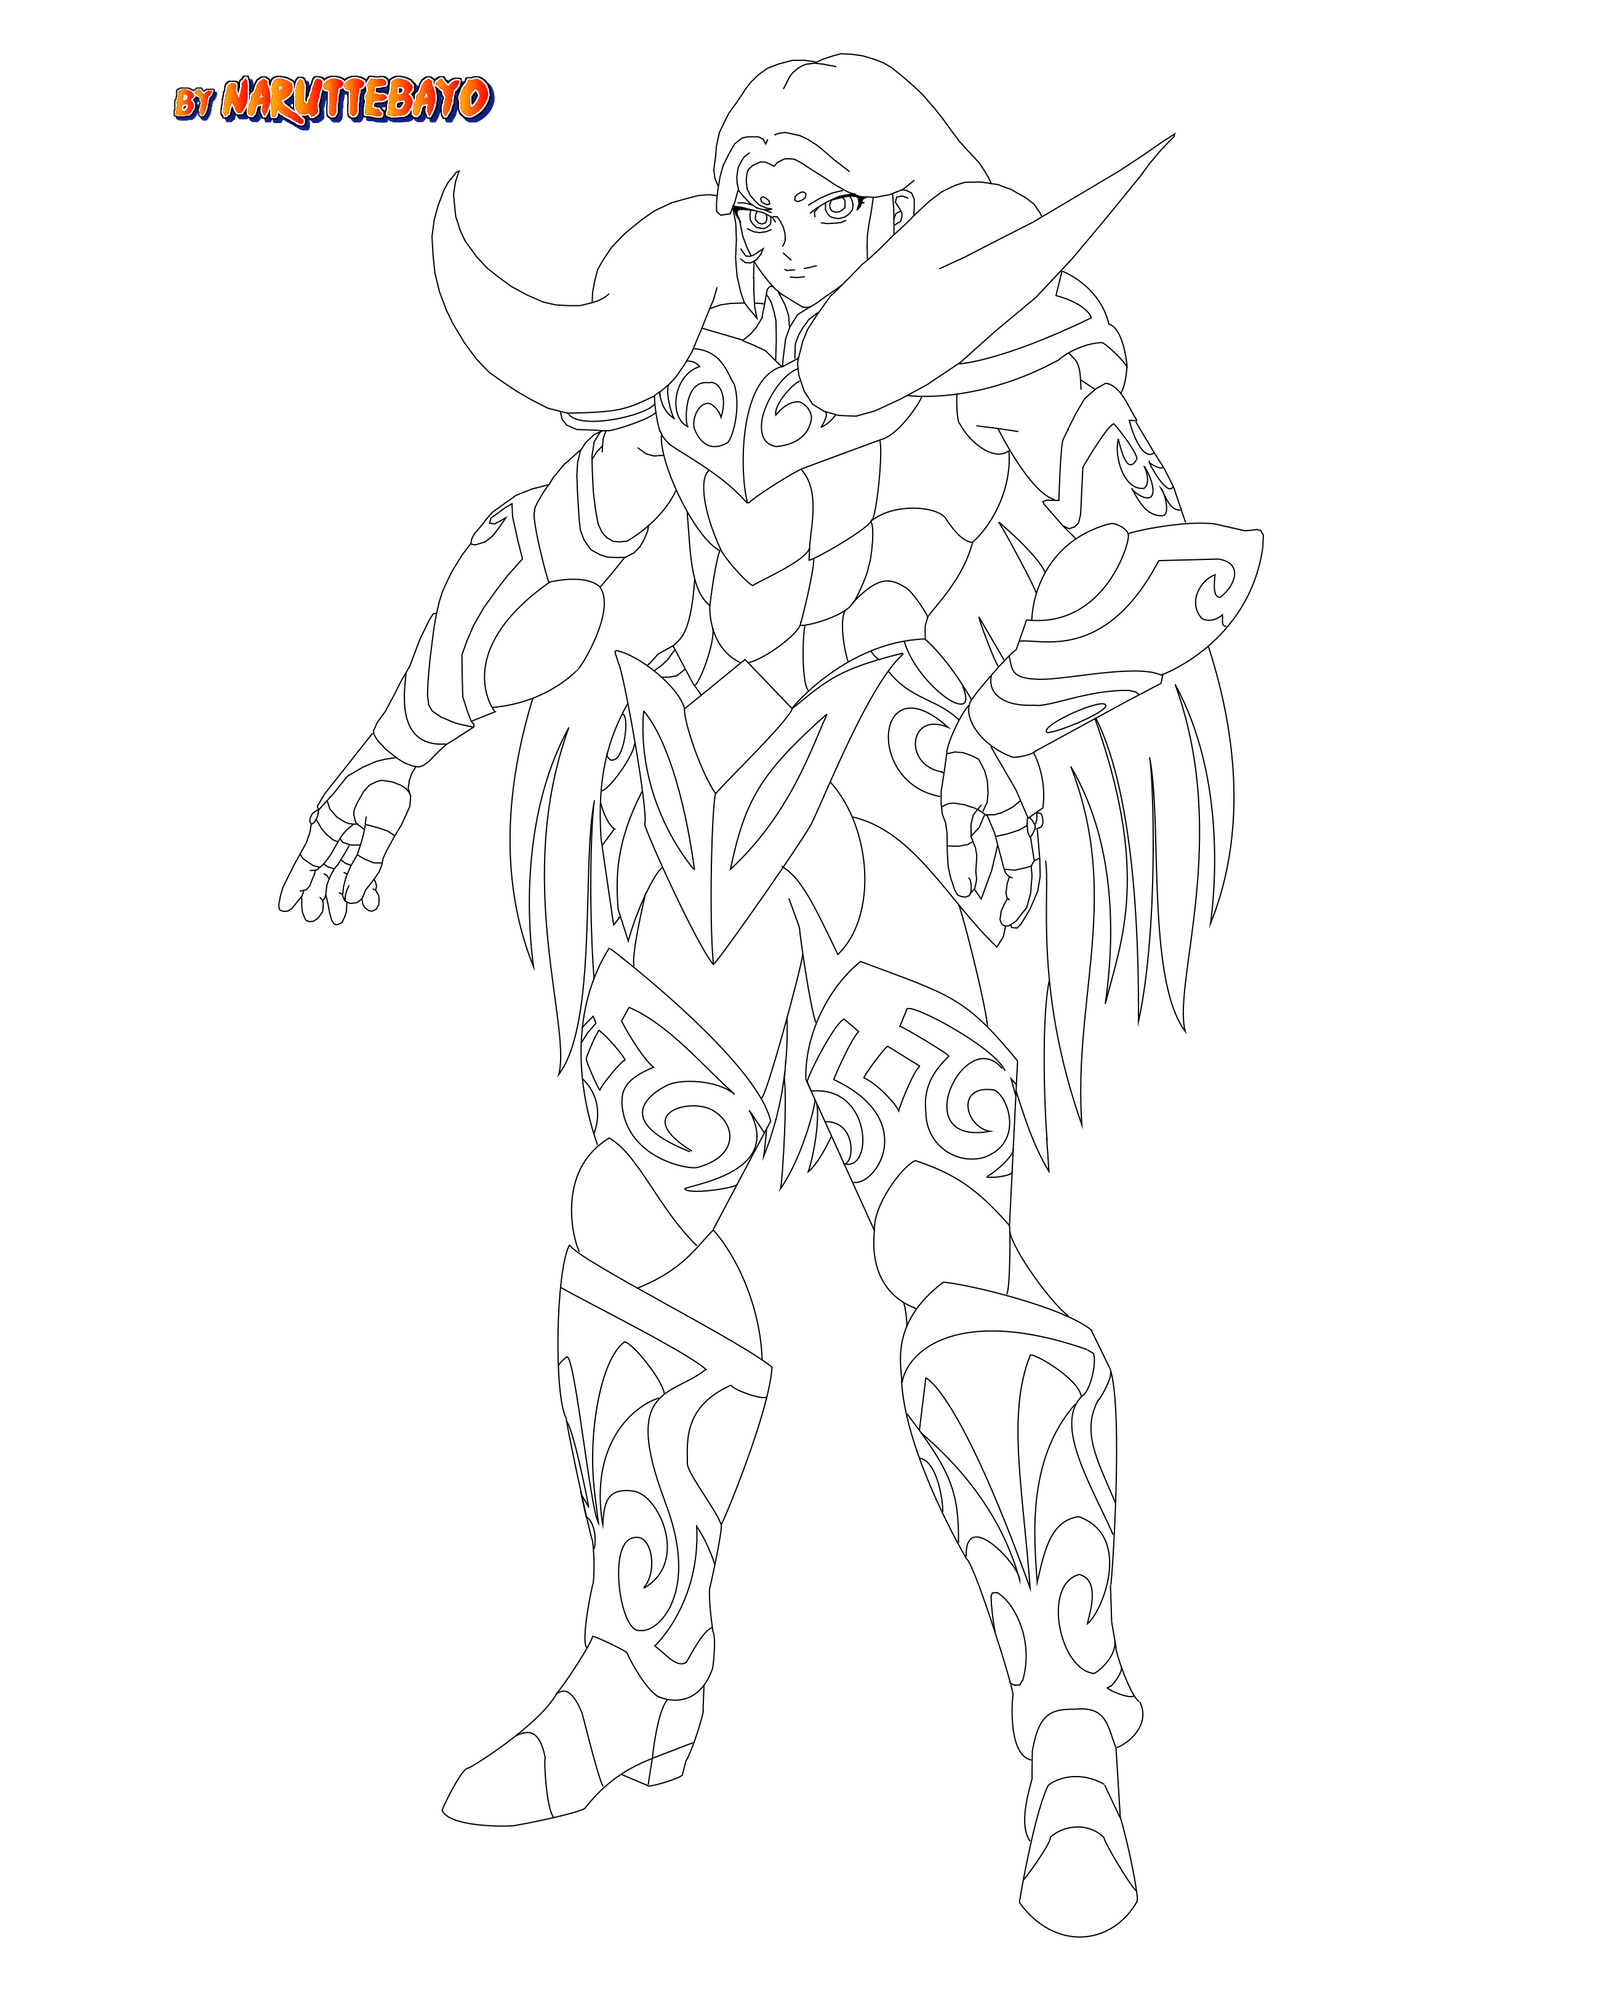 gold aries no lineart by Naruttebayo67 on deviantART